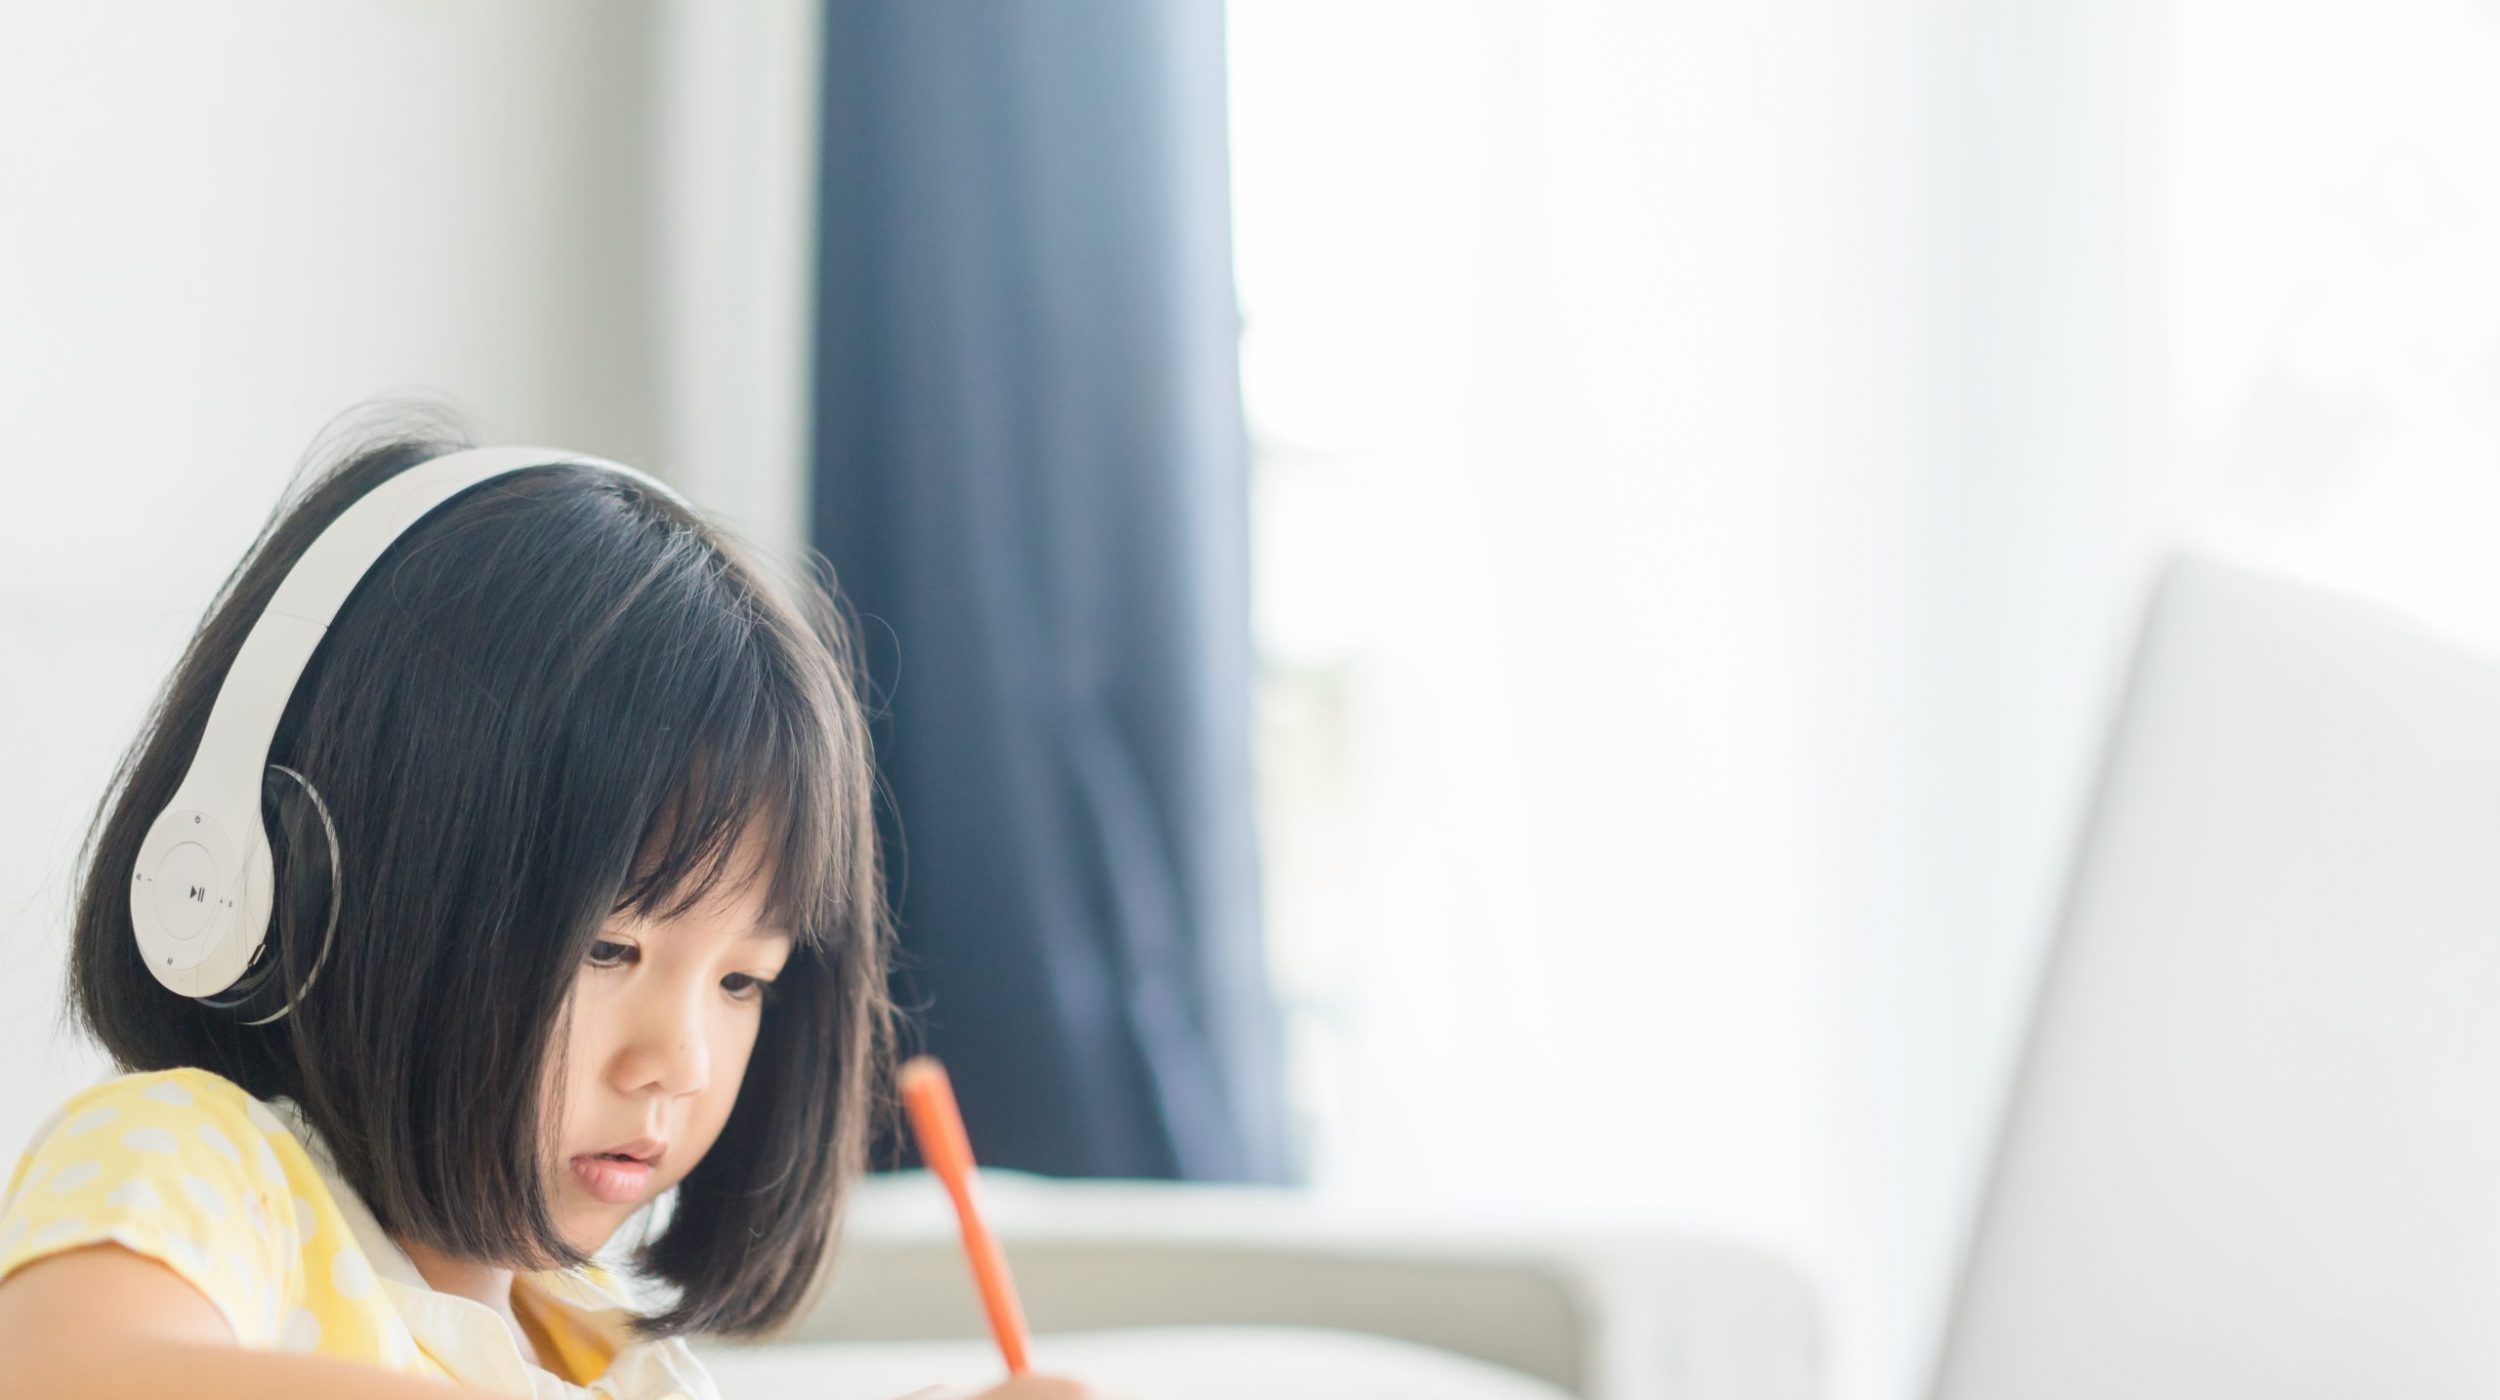 A young girl learning remotely on a laptop